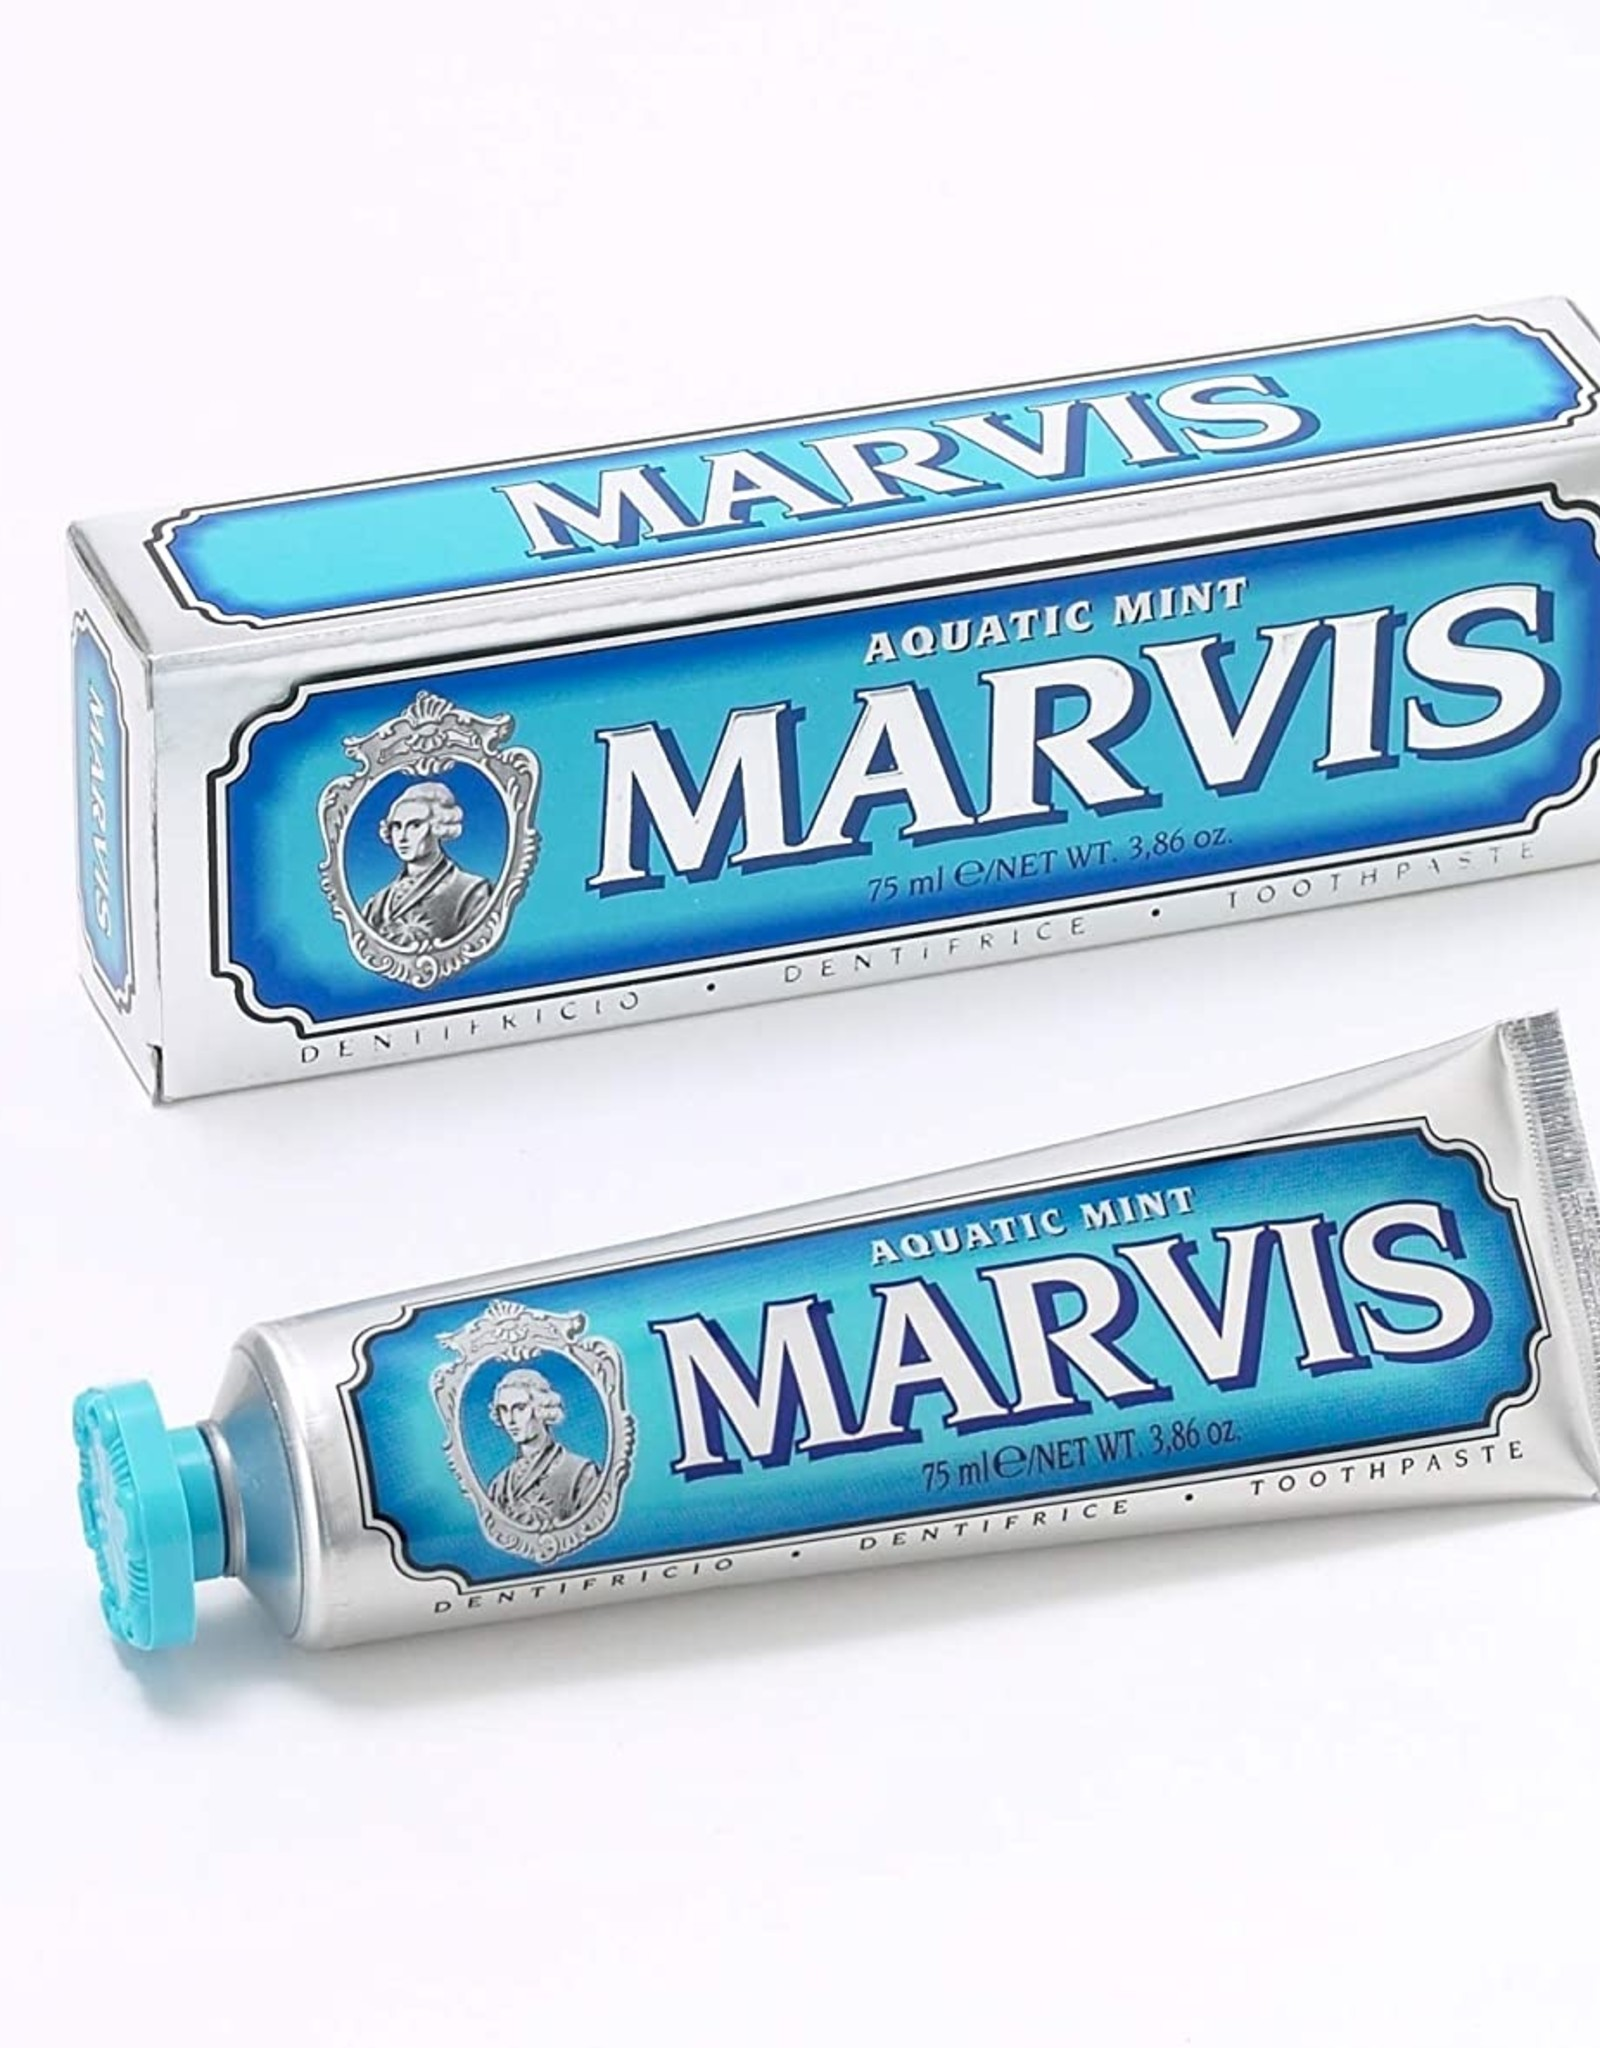 Marvis Toothpaste - Aquatic Mint